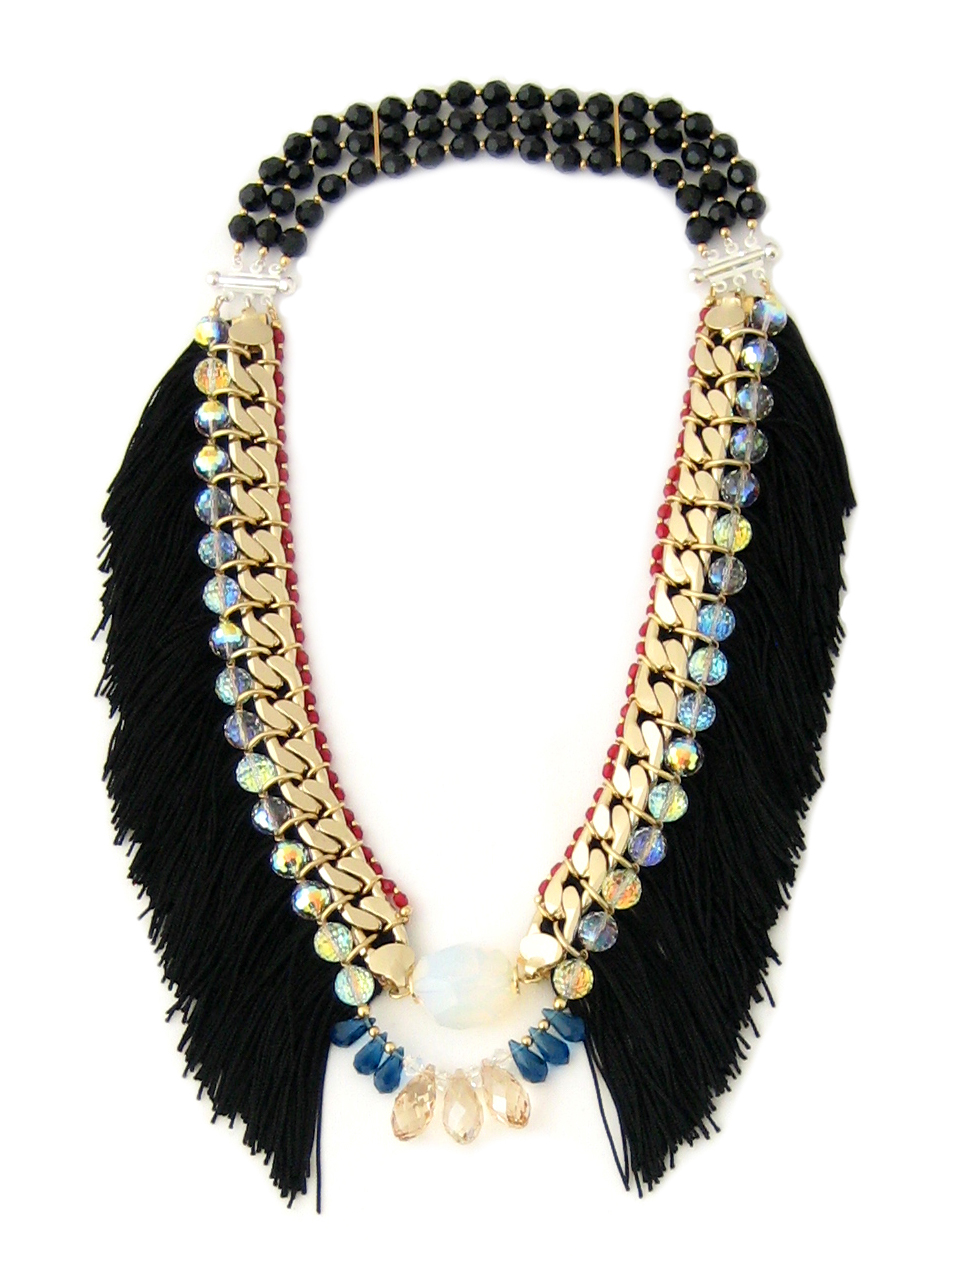 019 Black Fringe Necklace.jpg